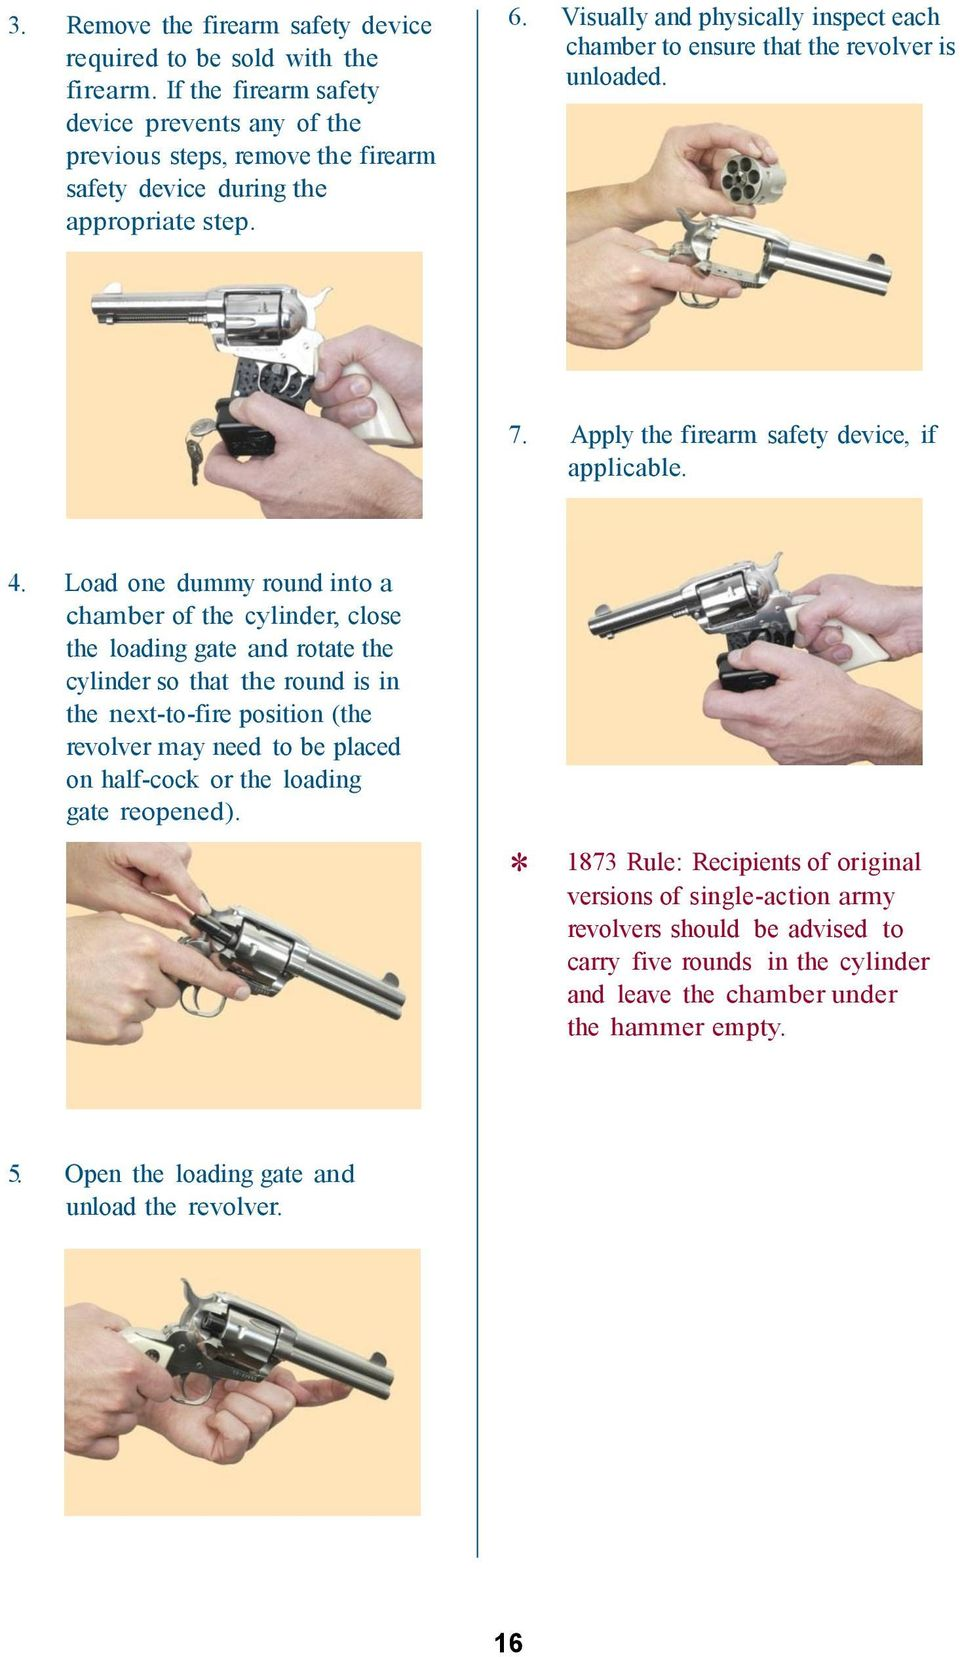 Load one dummy round into a chamber of the cylinder, close the loading gate and rotate the cylinder so that the round is in the next-to-fire position (the revolver may need to be placed on half-cock